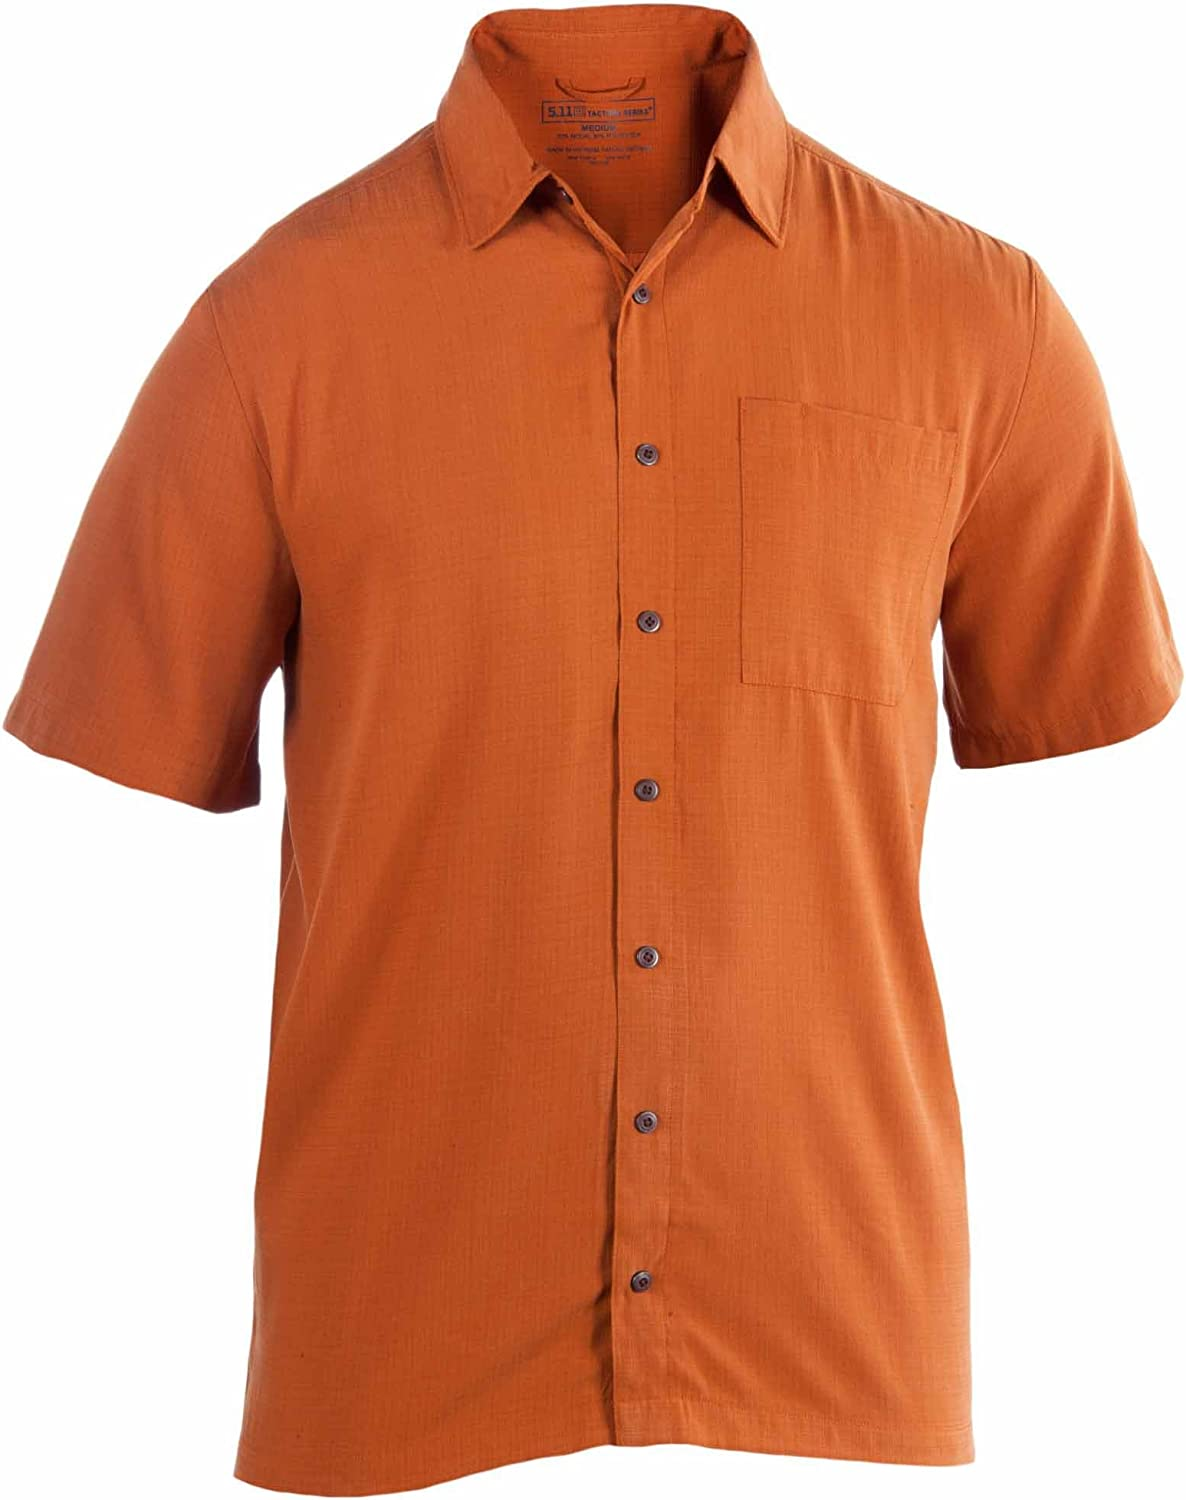 5.11 Tactical Mens Covert Select Shirt Style 7119 Short Sleeve